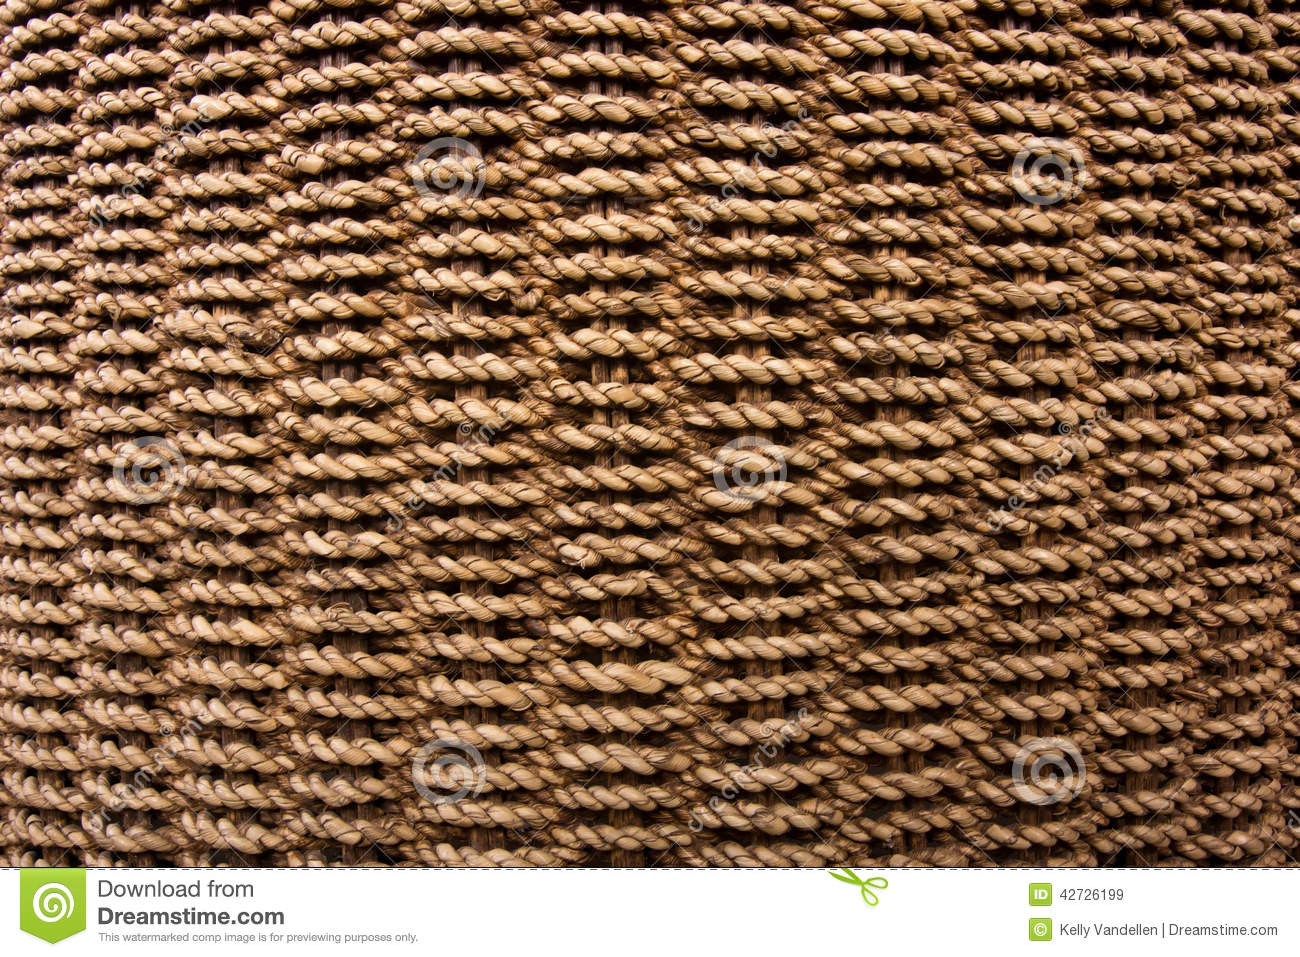 How To Weave A Basket With Rope : Rope basket weave texture stock photo image